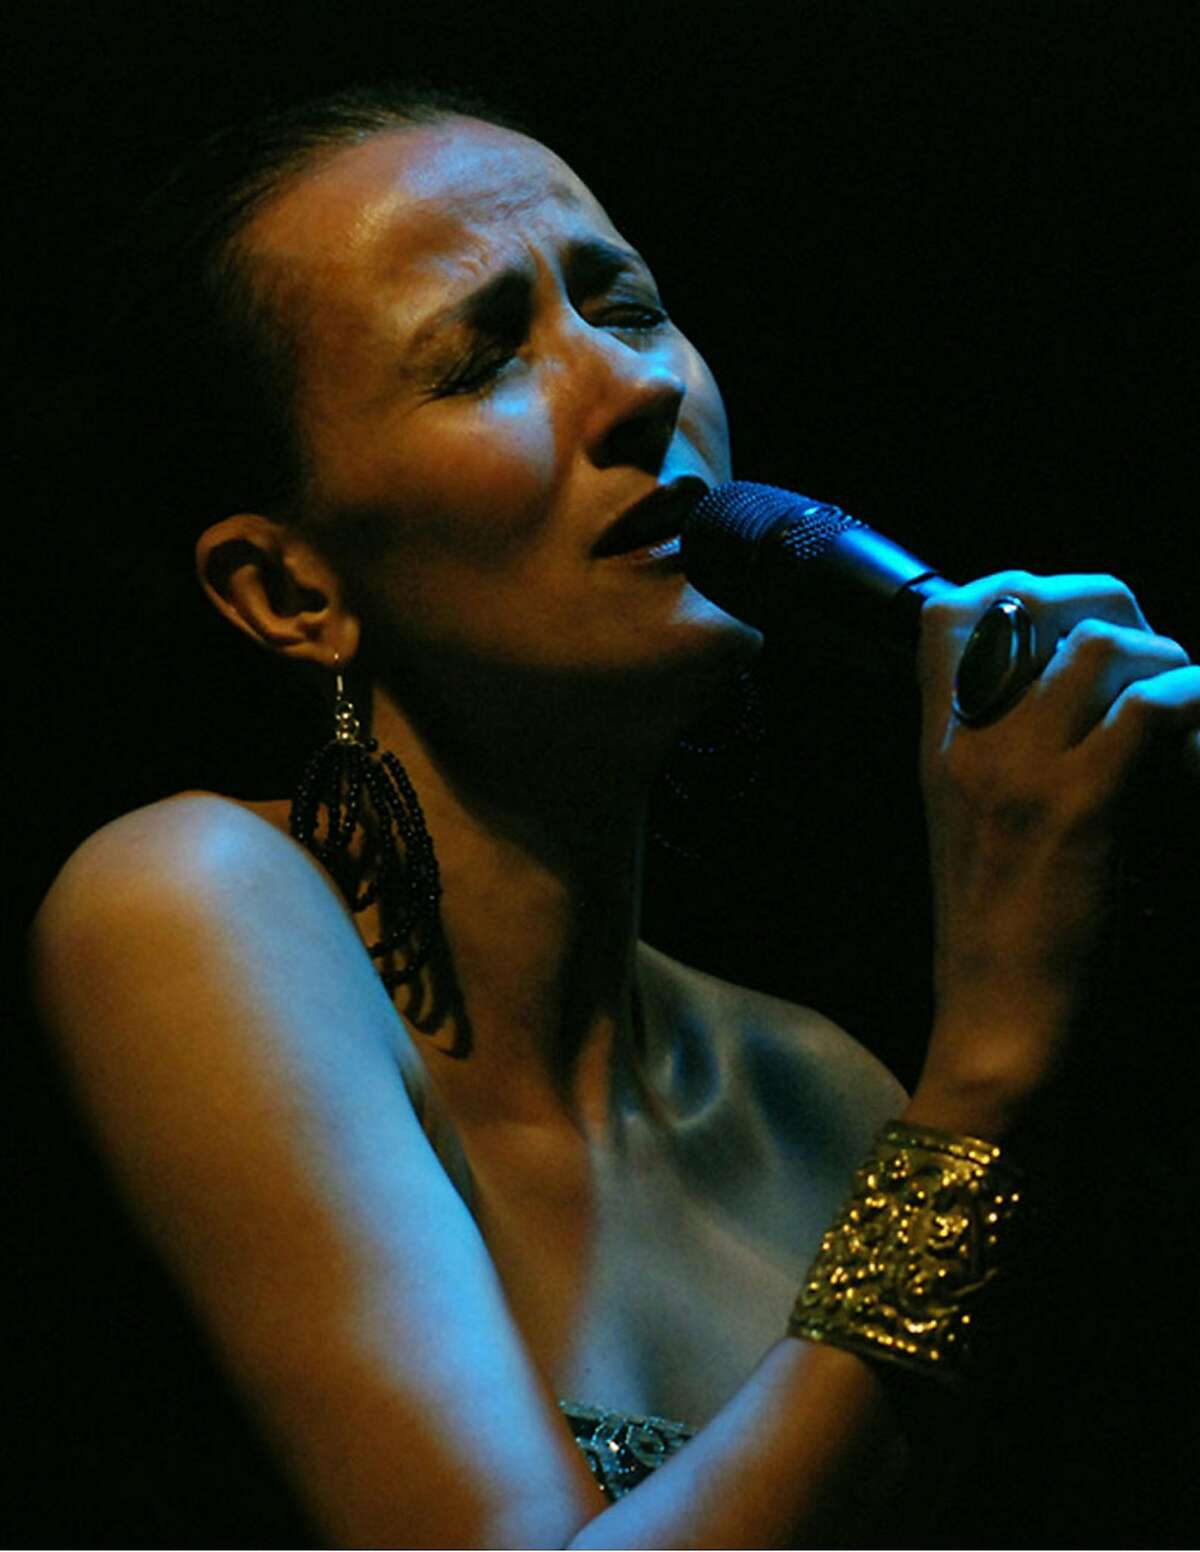 Teresa Souter's struggle to figure out her identify has been manifested in her music.